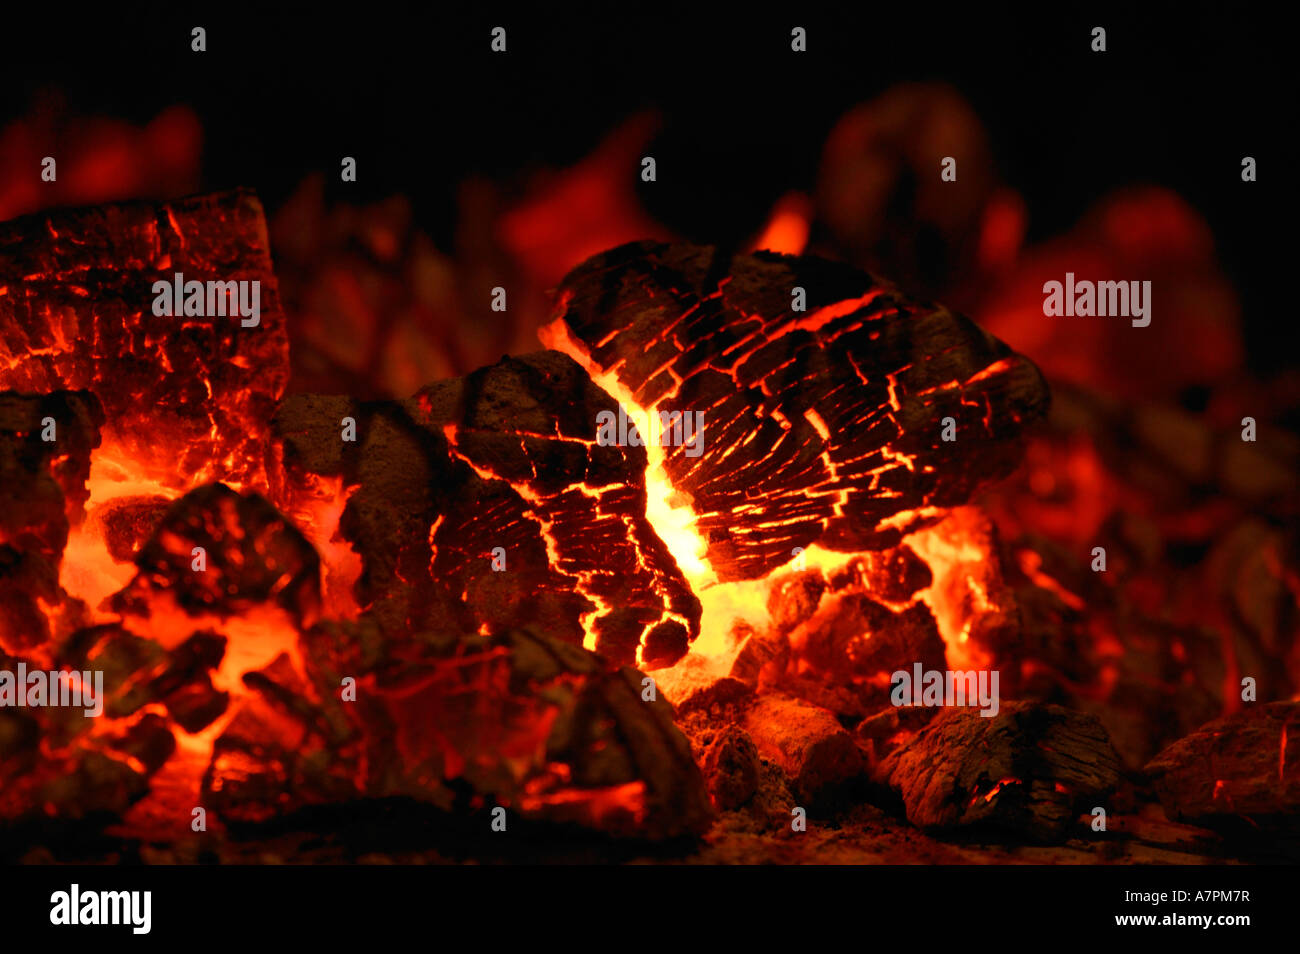 Glowing Embers Stock Photos Glowing Embers Stock Images